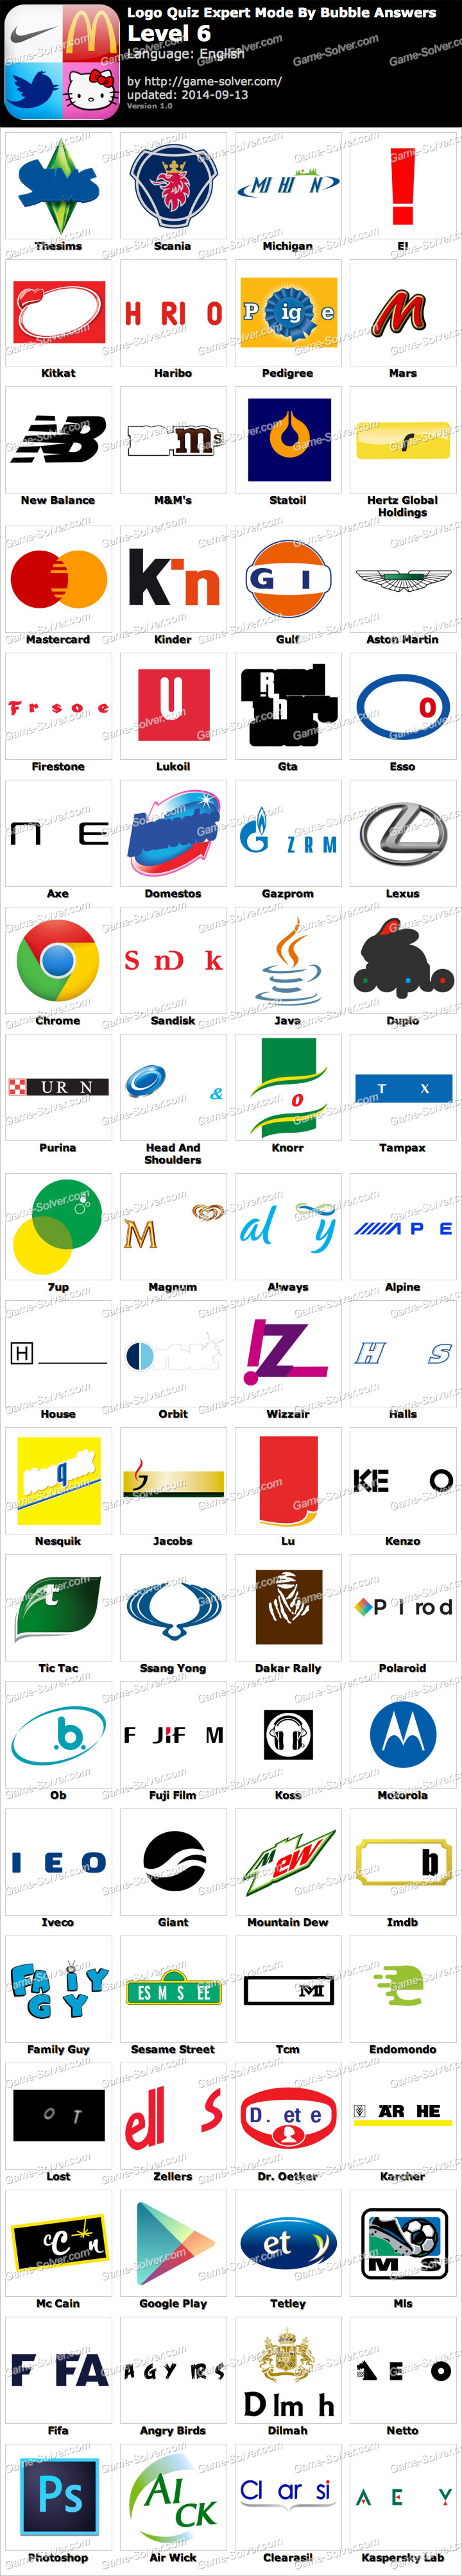 Logo Game Answers Level 6 : answers, level, Expert, Bubble, Level, Solver